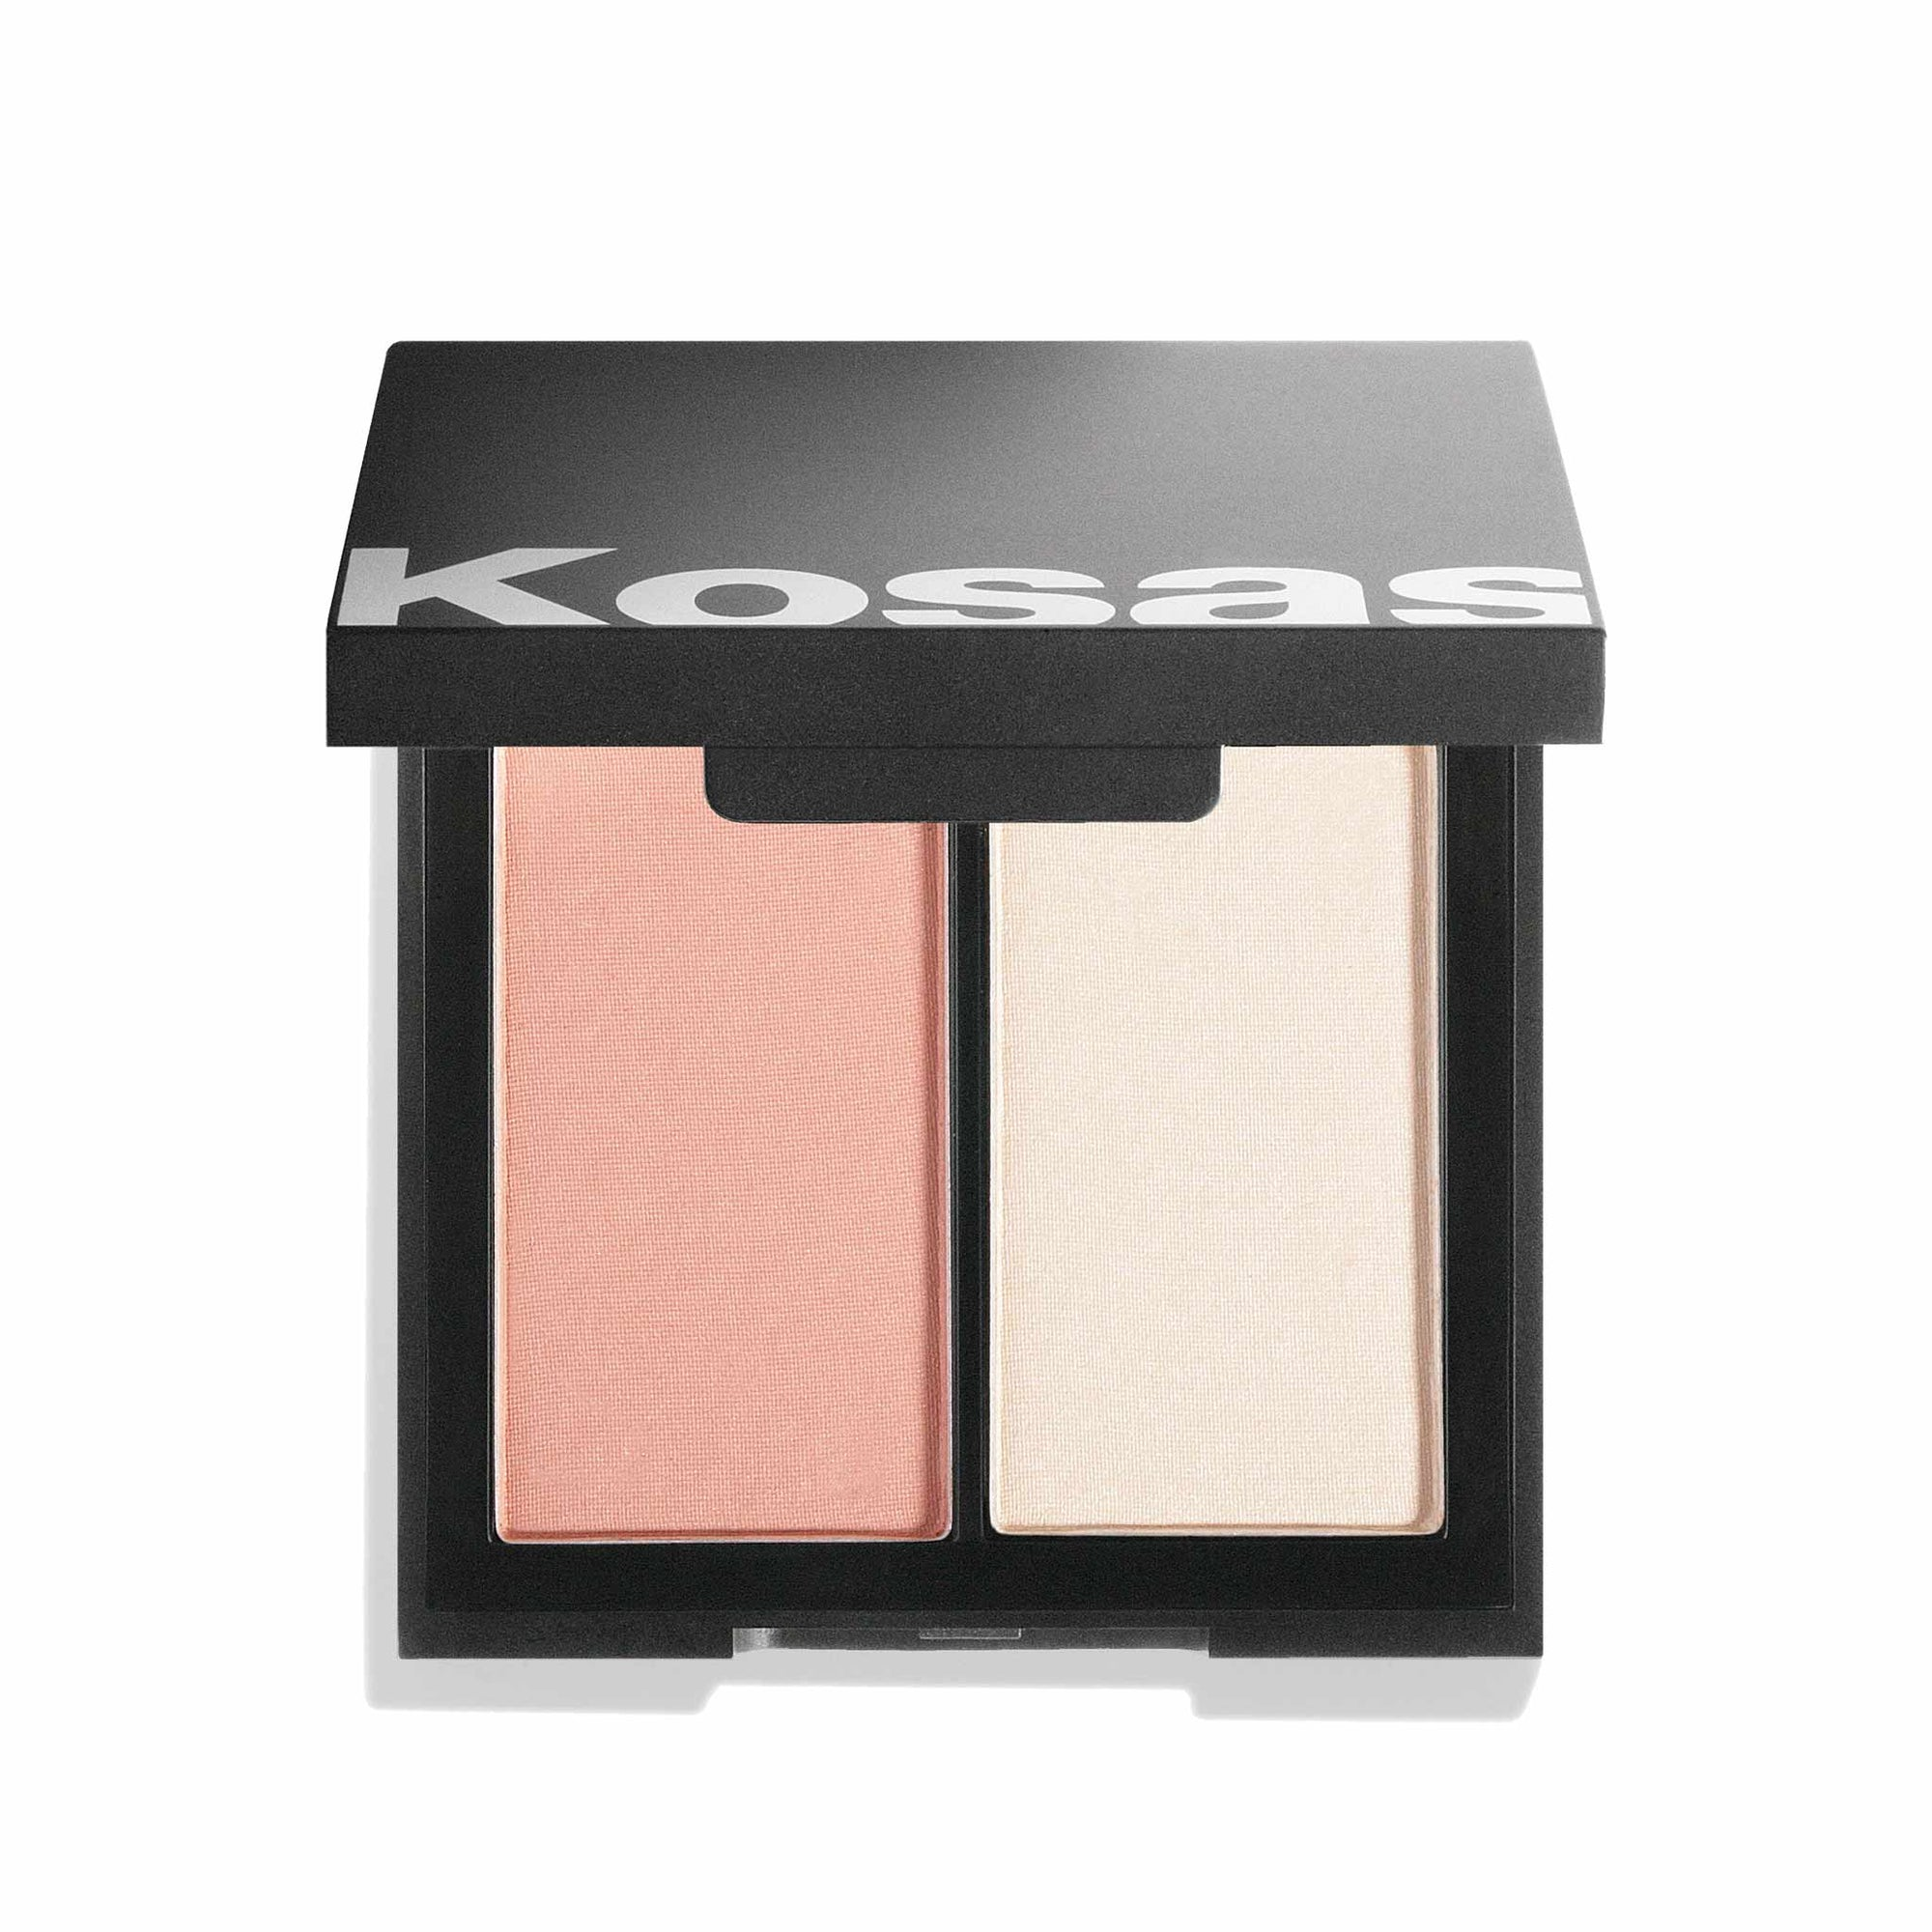 Kosas Color and Light Pressed Powder Palette - AILLEA